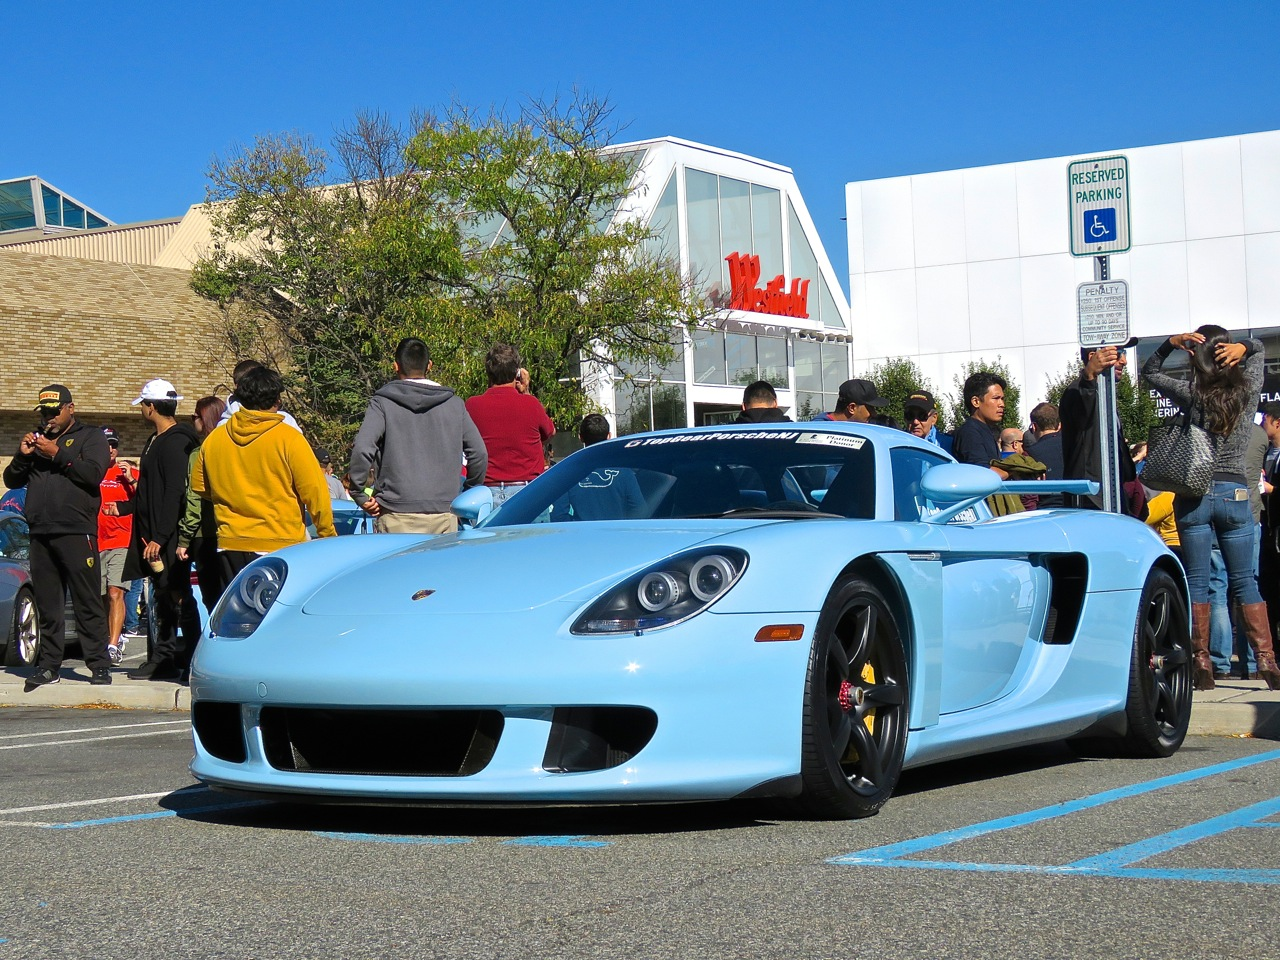 Baby Blue Porsche Carrera Gt At Cars And Caffe Mind Over Motor